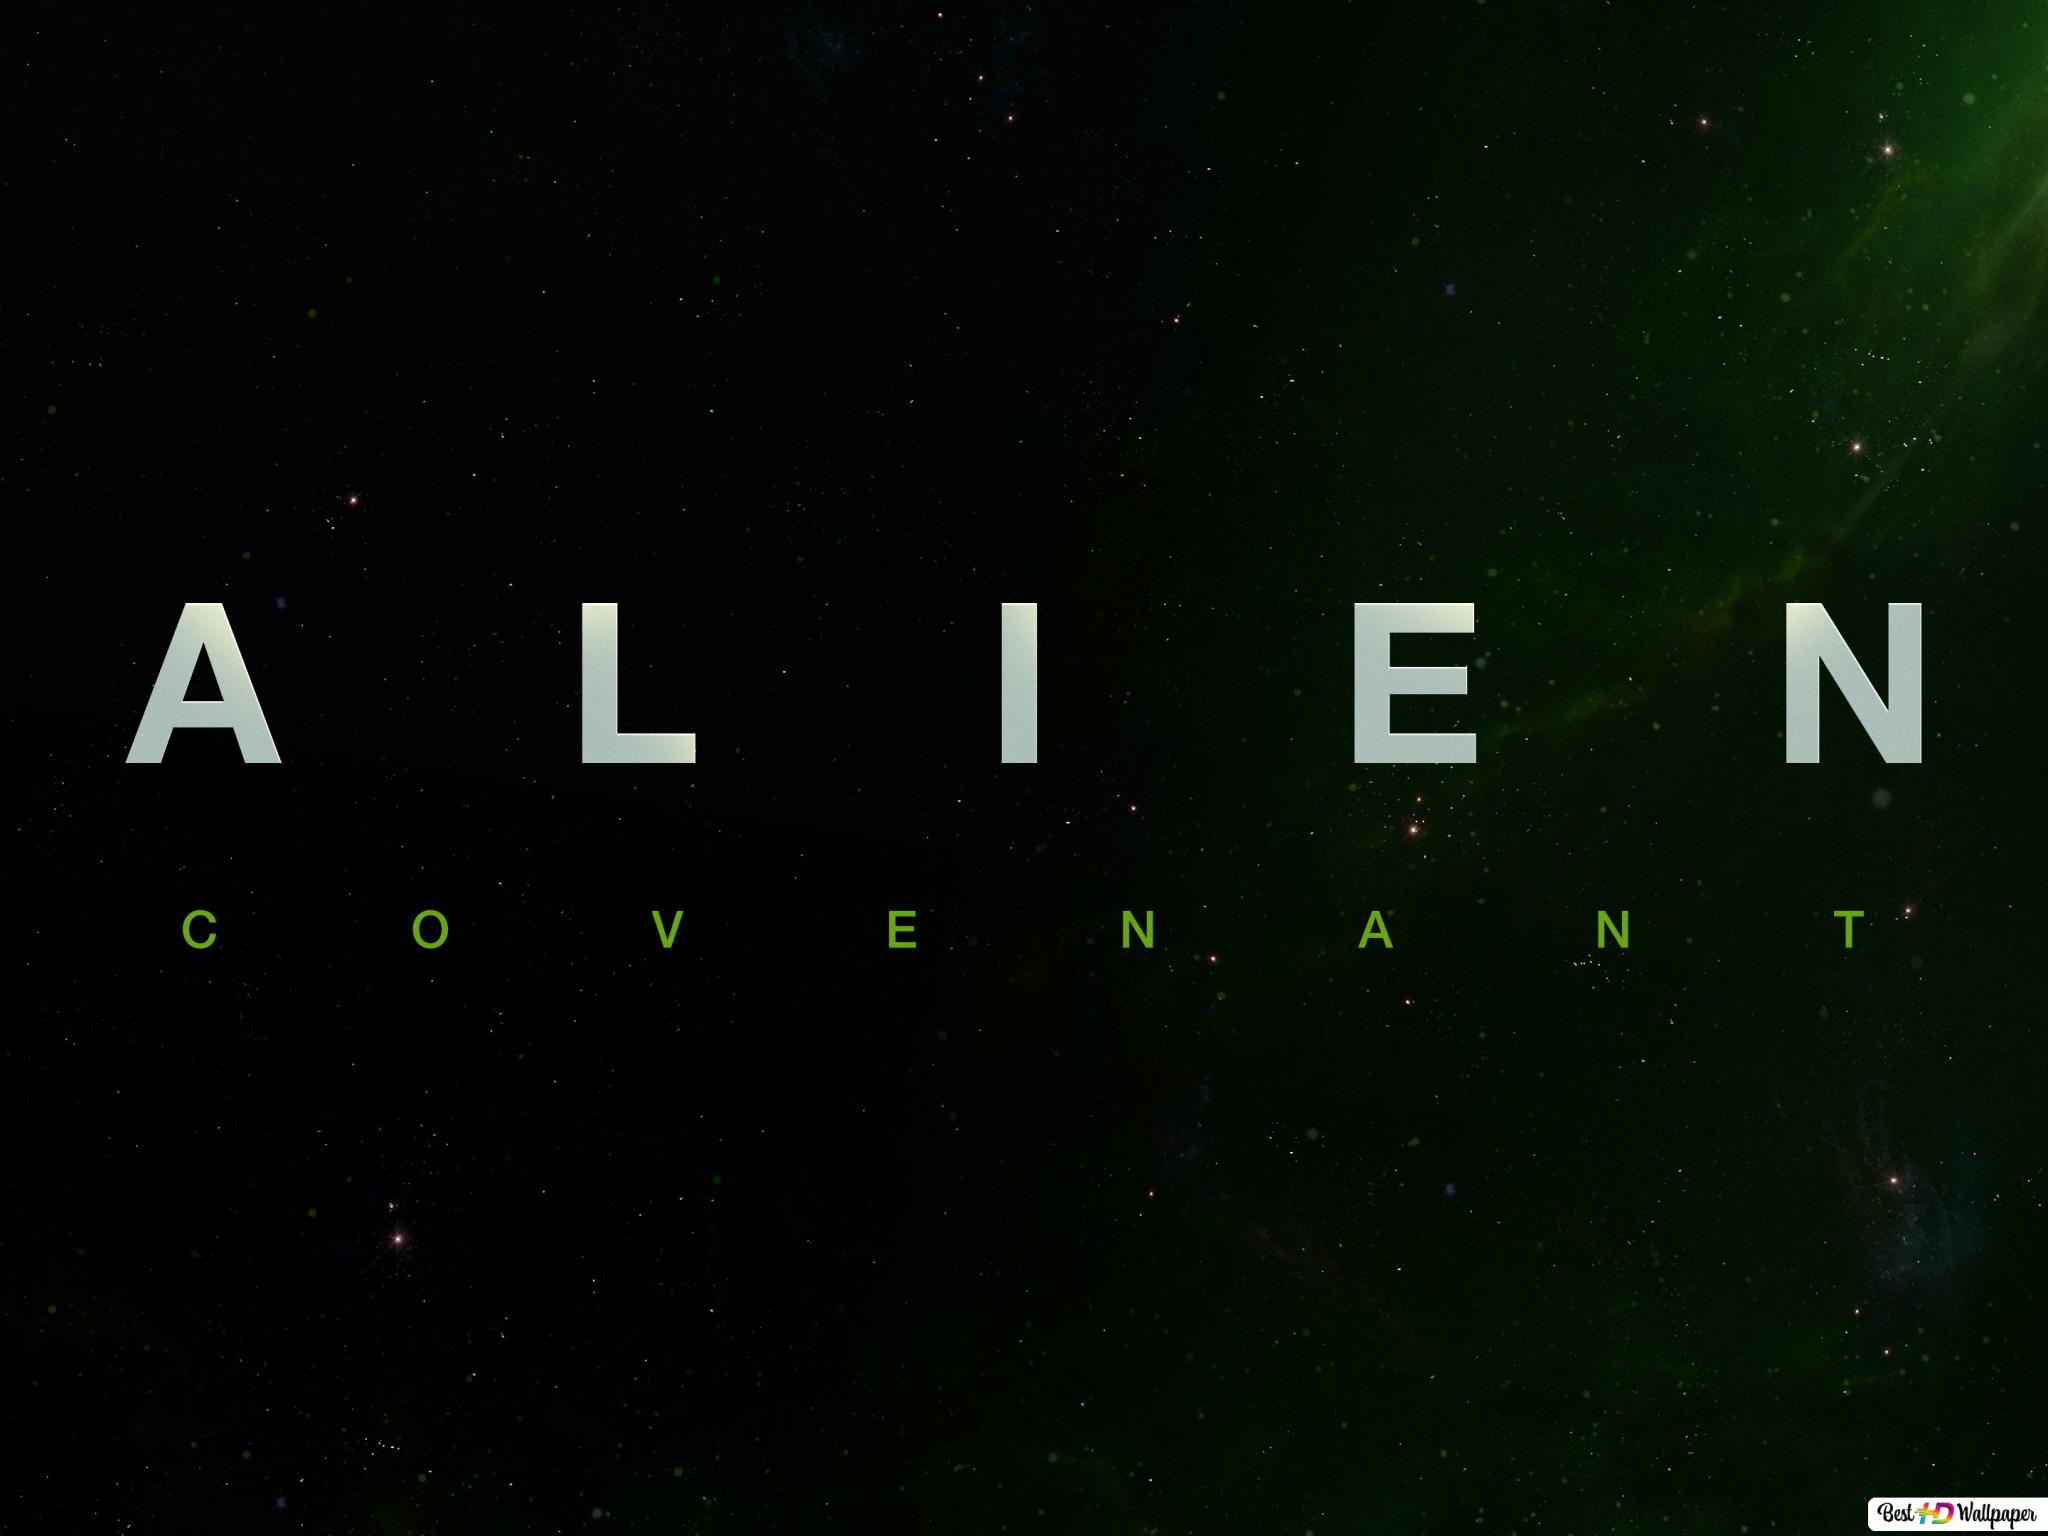 Alien: Covenant (2017) HD wallpaper